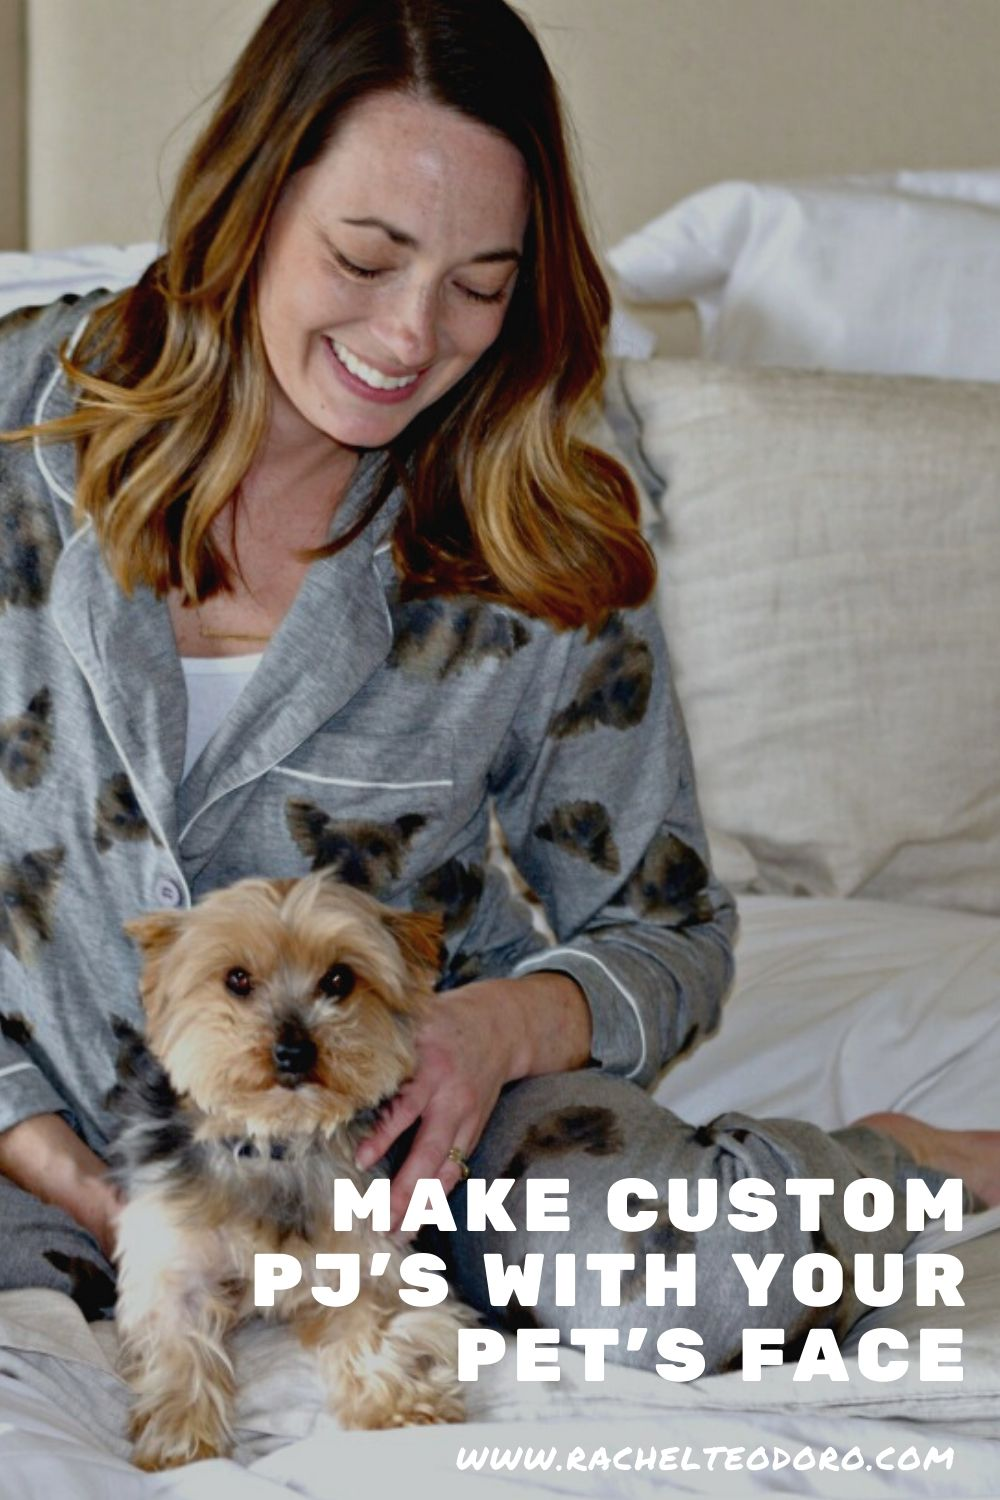 DIY custom pet face pajamas